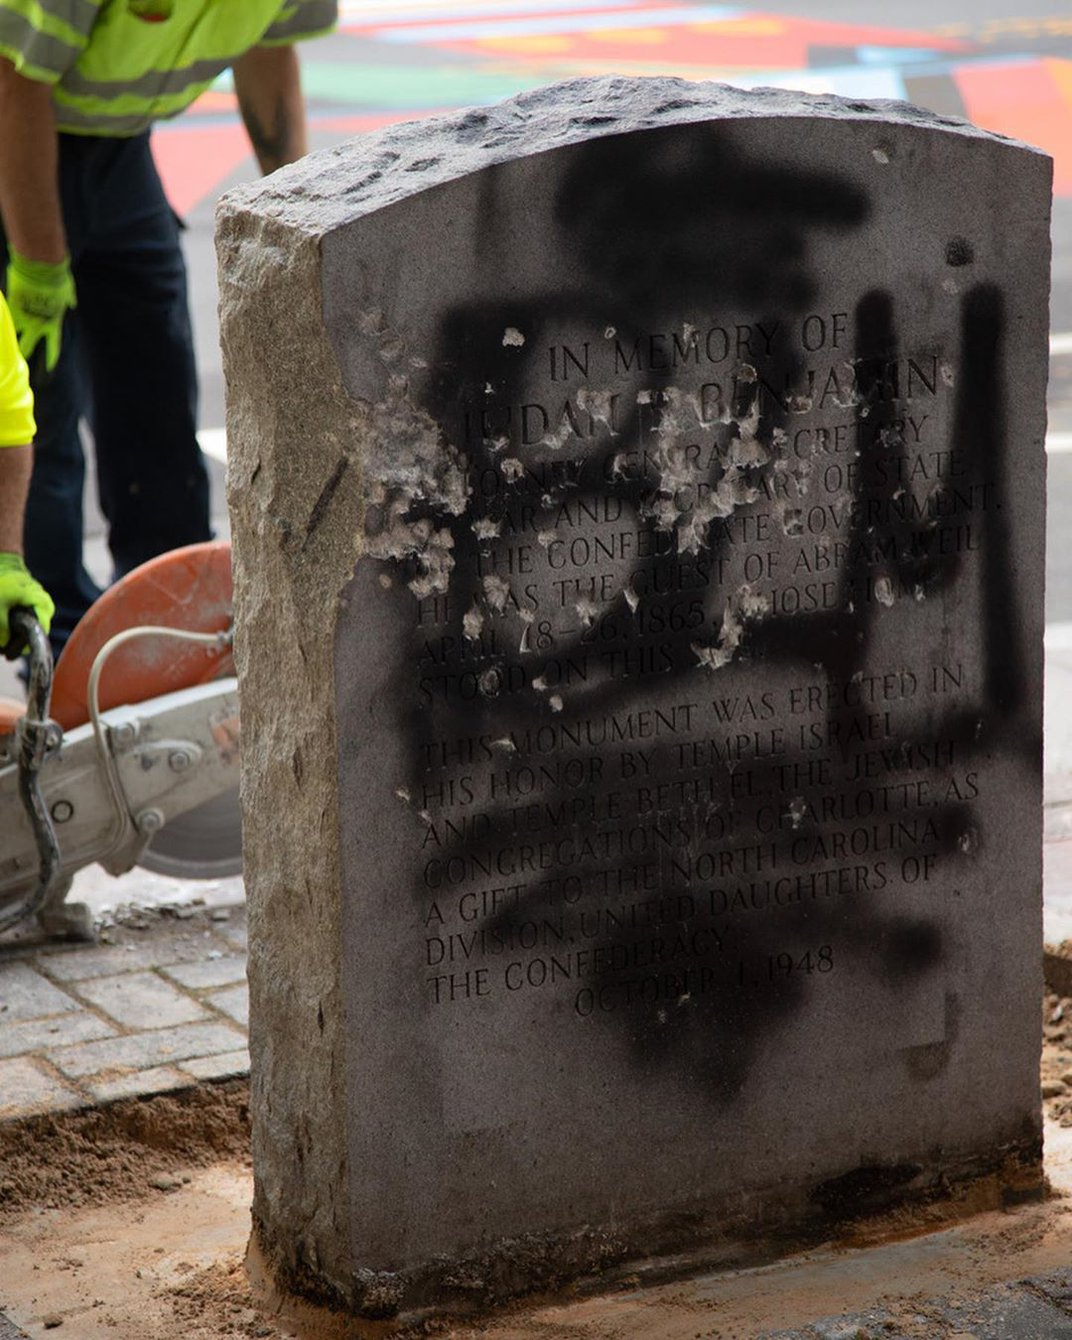 Charlotte's Monument to a Jewish Confederate Was Hated Even Before It Was Built